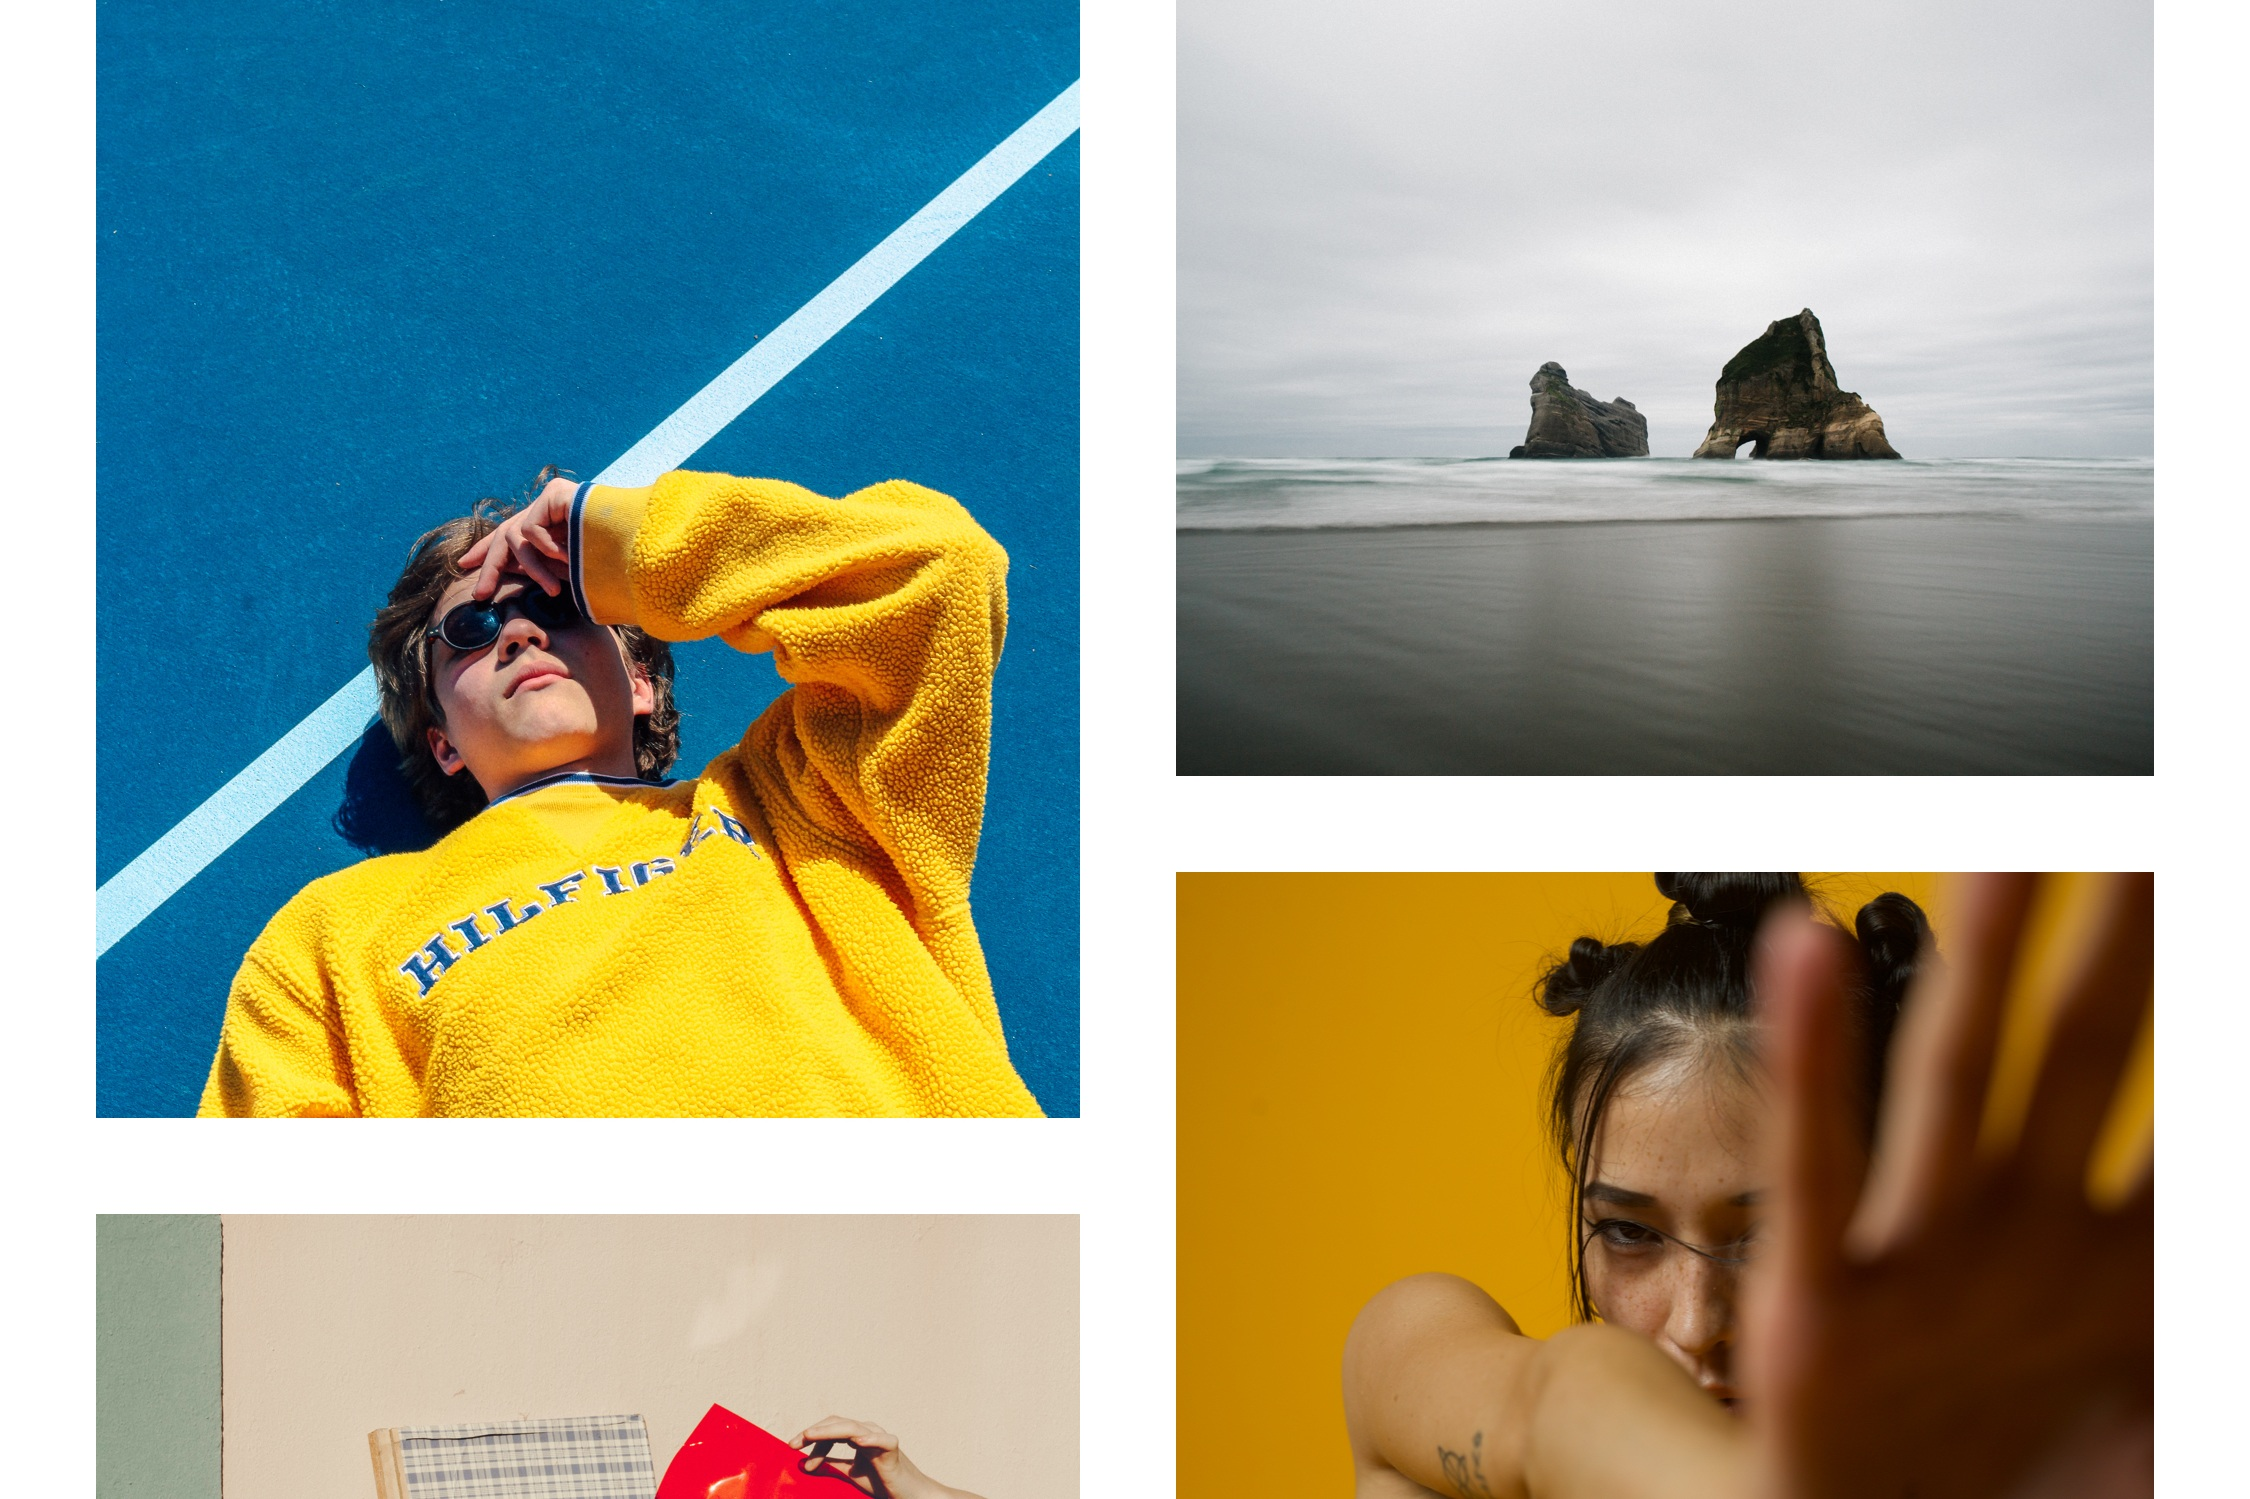 No Likes or Comments? Photo App VSCO Has Been Doing It for Years   May 3, 2019 – Allison Swope, VP of Product at VSCO, explains why removing the pressure of likes and comments spurs creativity, and how 'really good AI' inspires innovation.